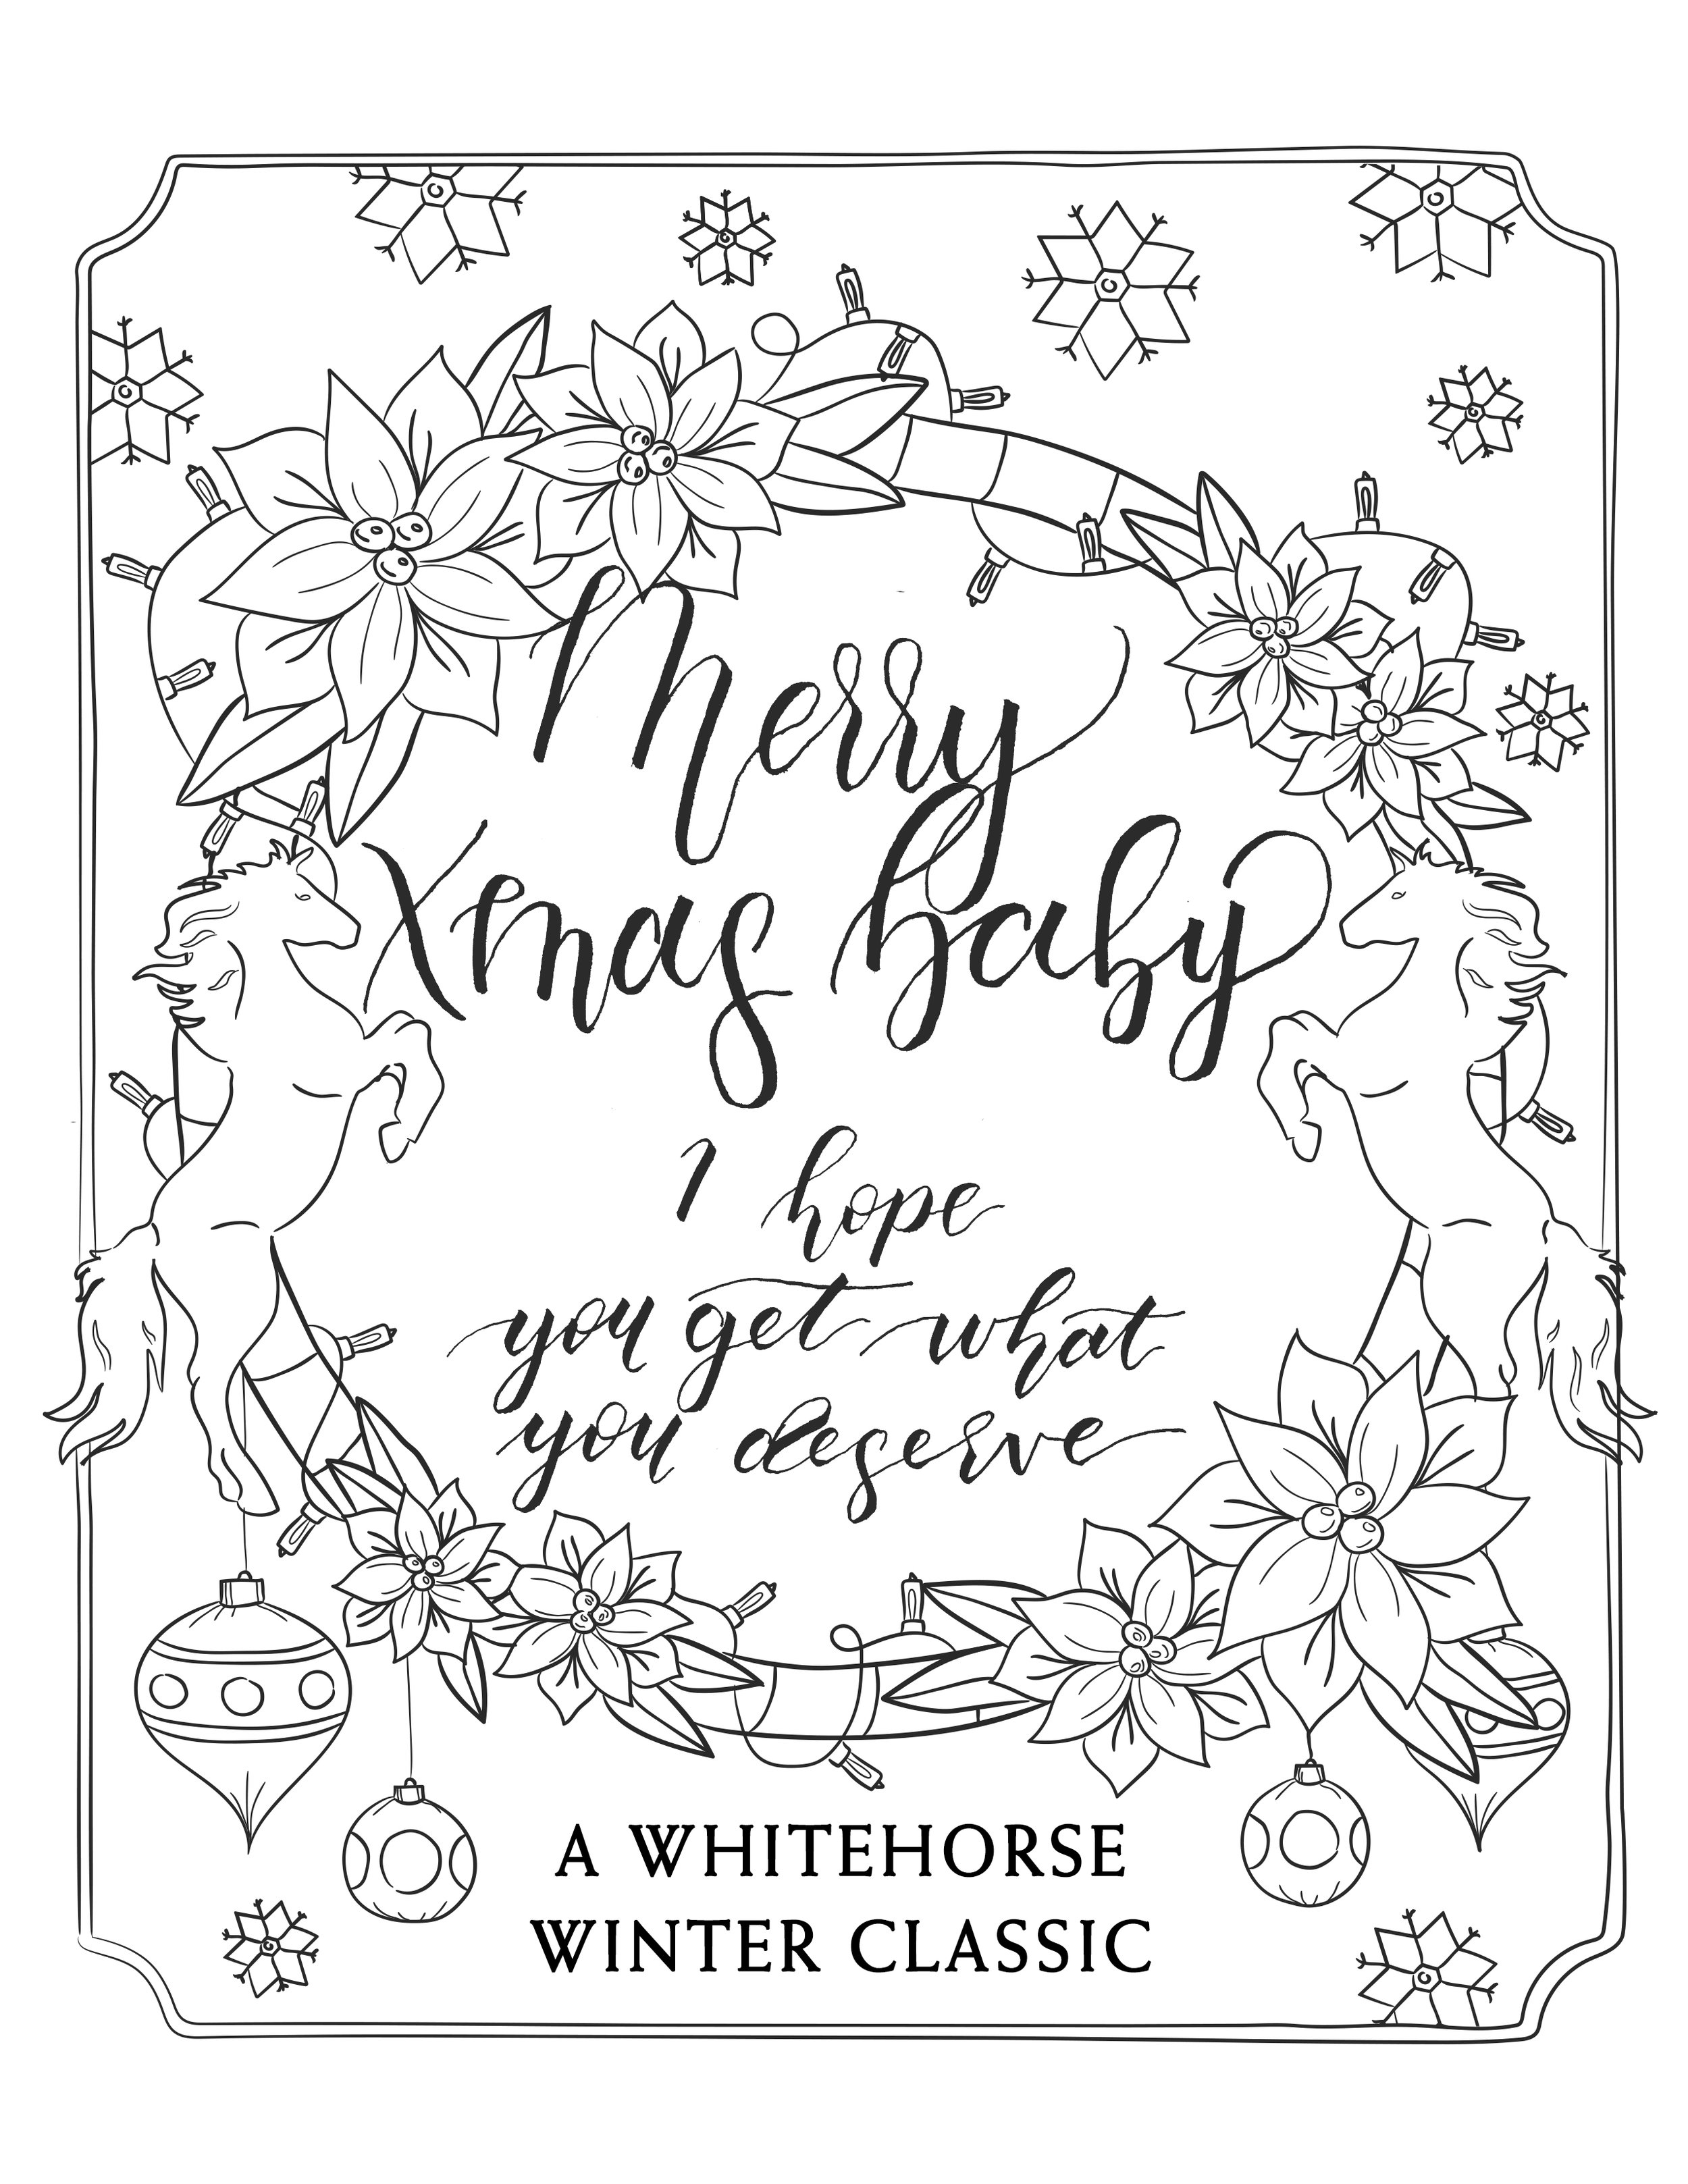 Whitehorse Colouring Page.jpg